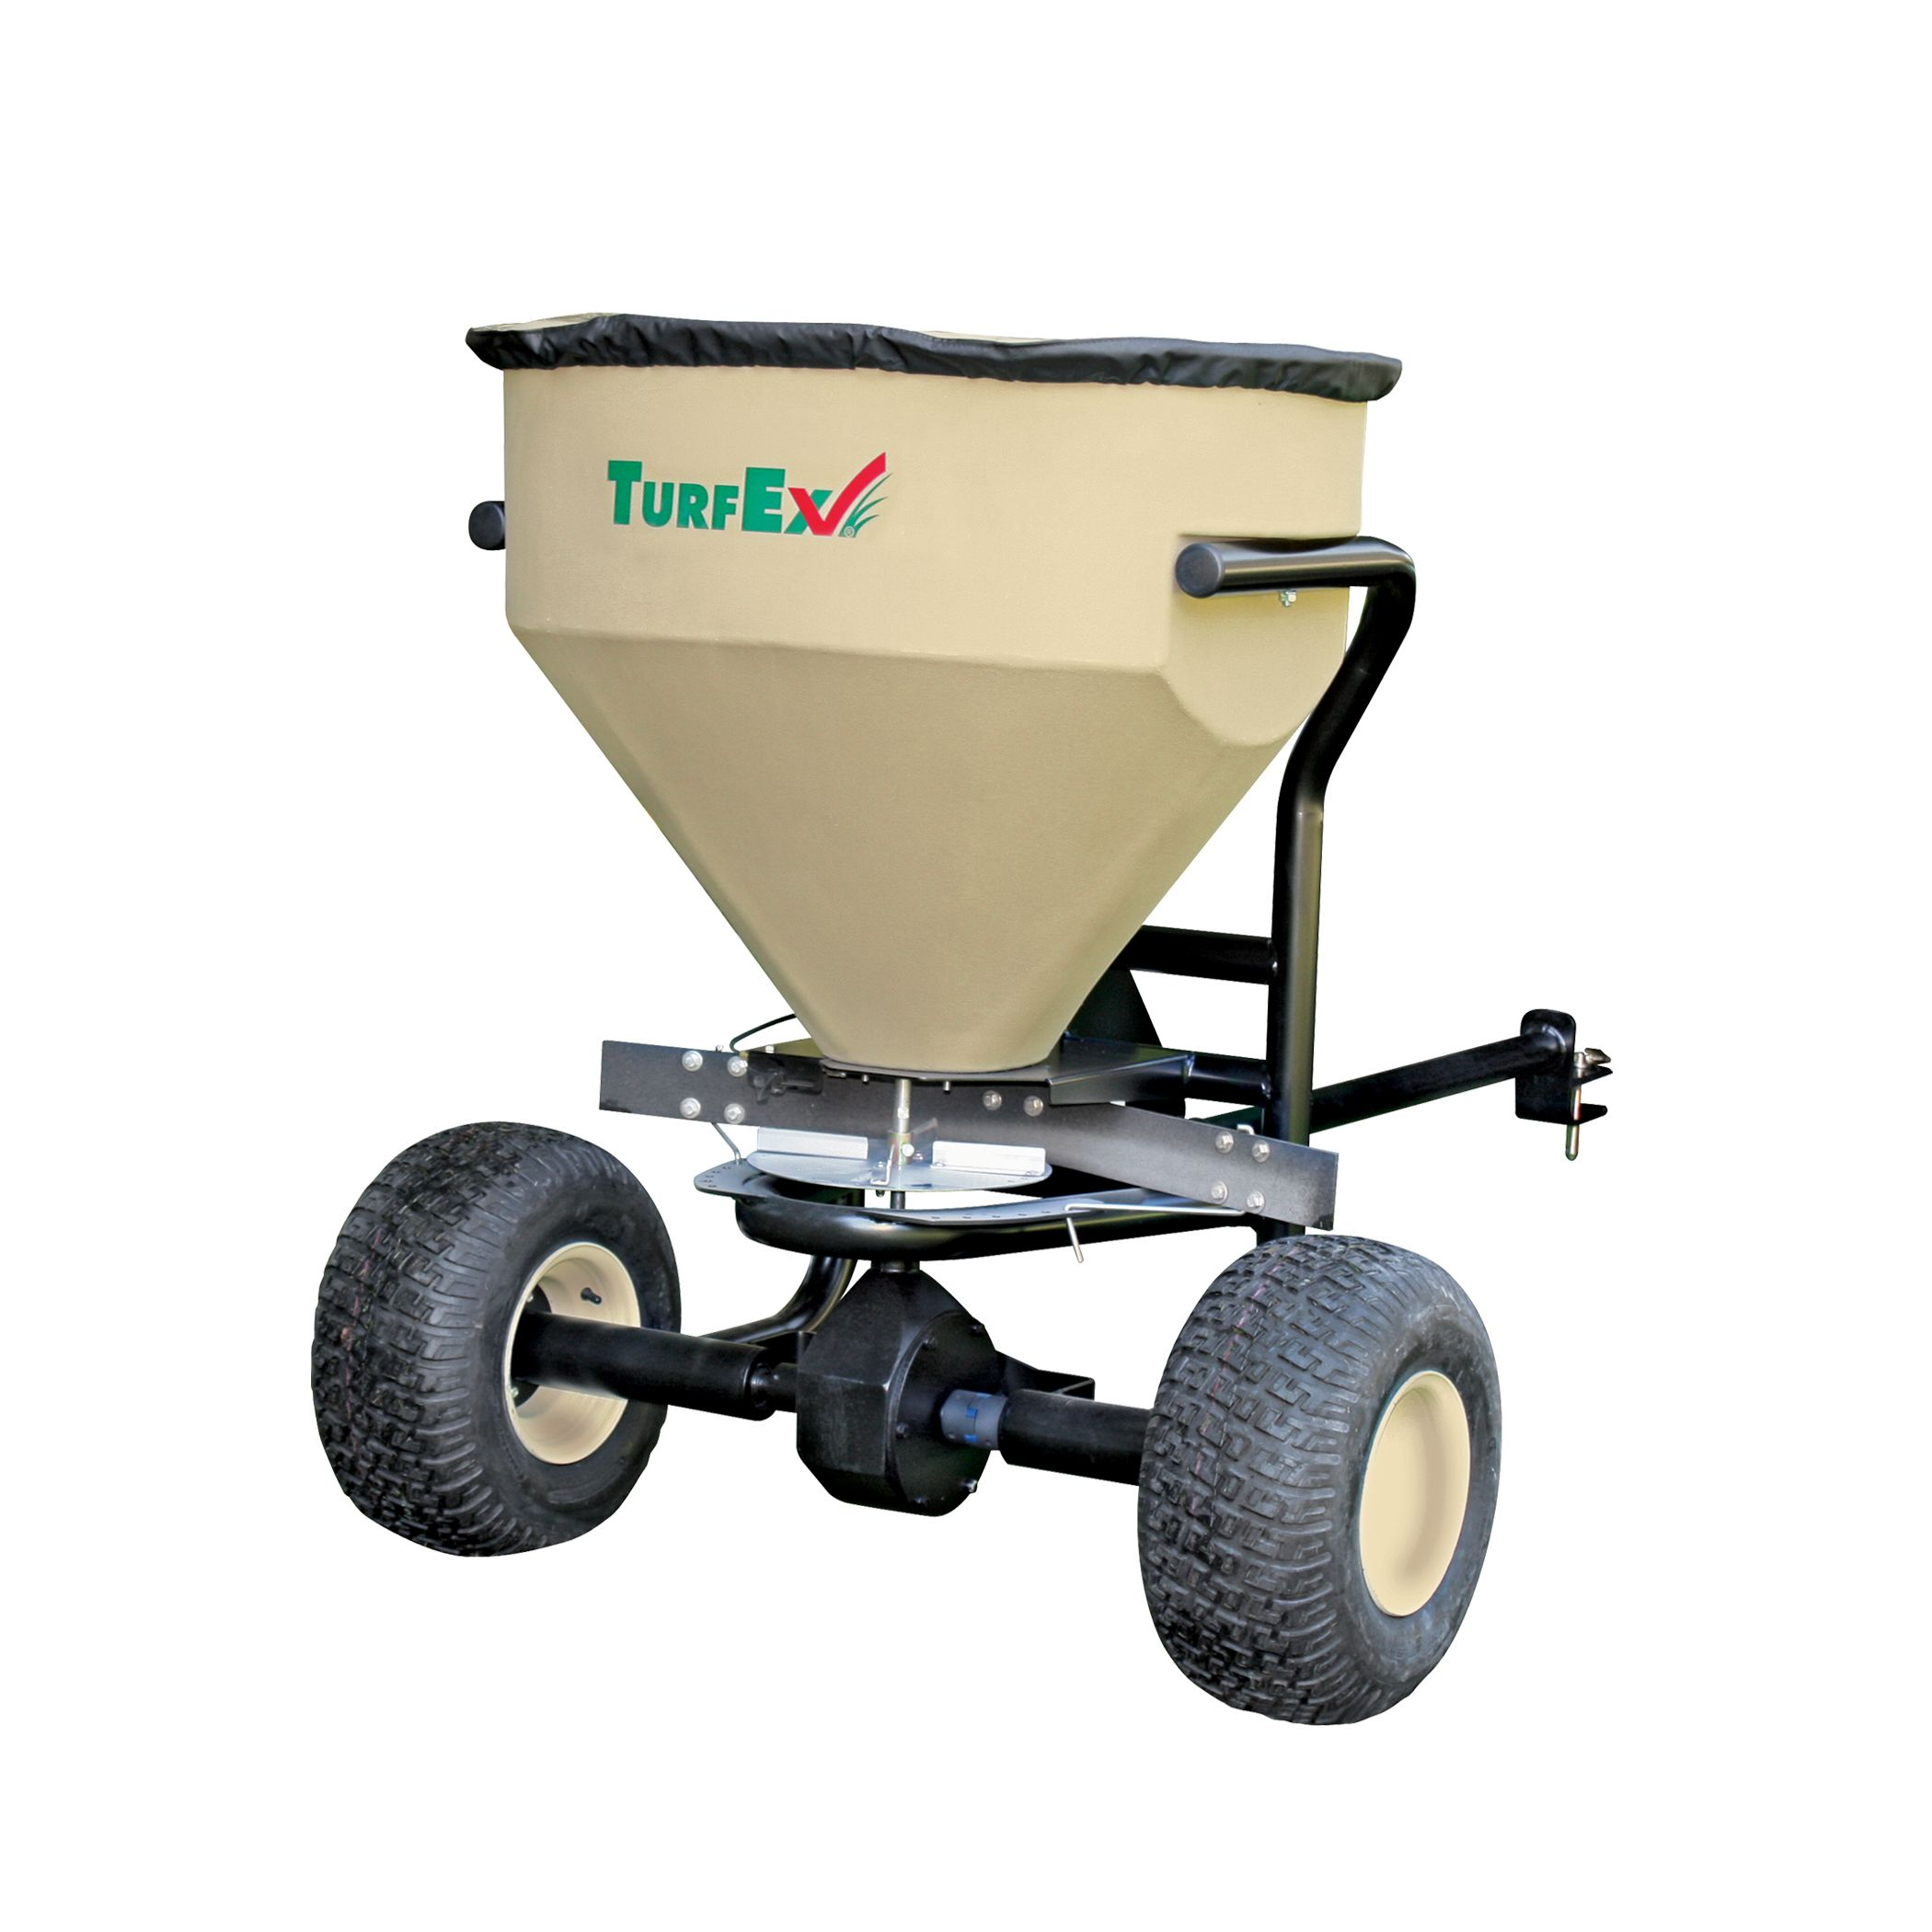 TS700GR Ground Driven Tow Behind Spreader